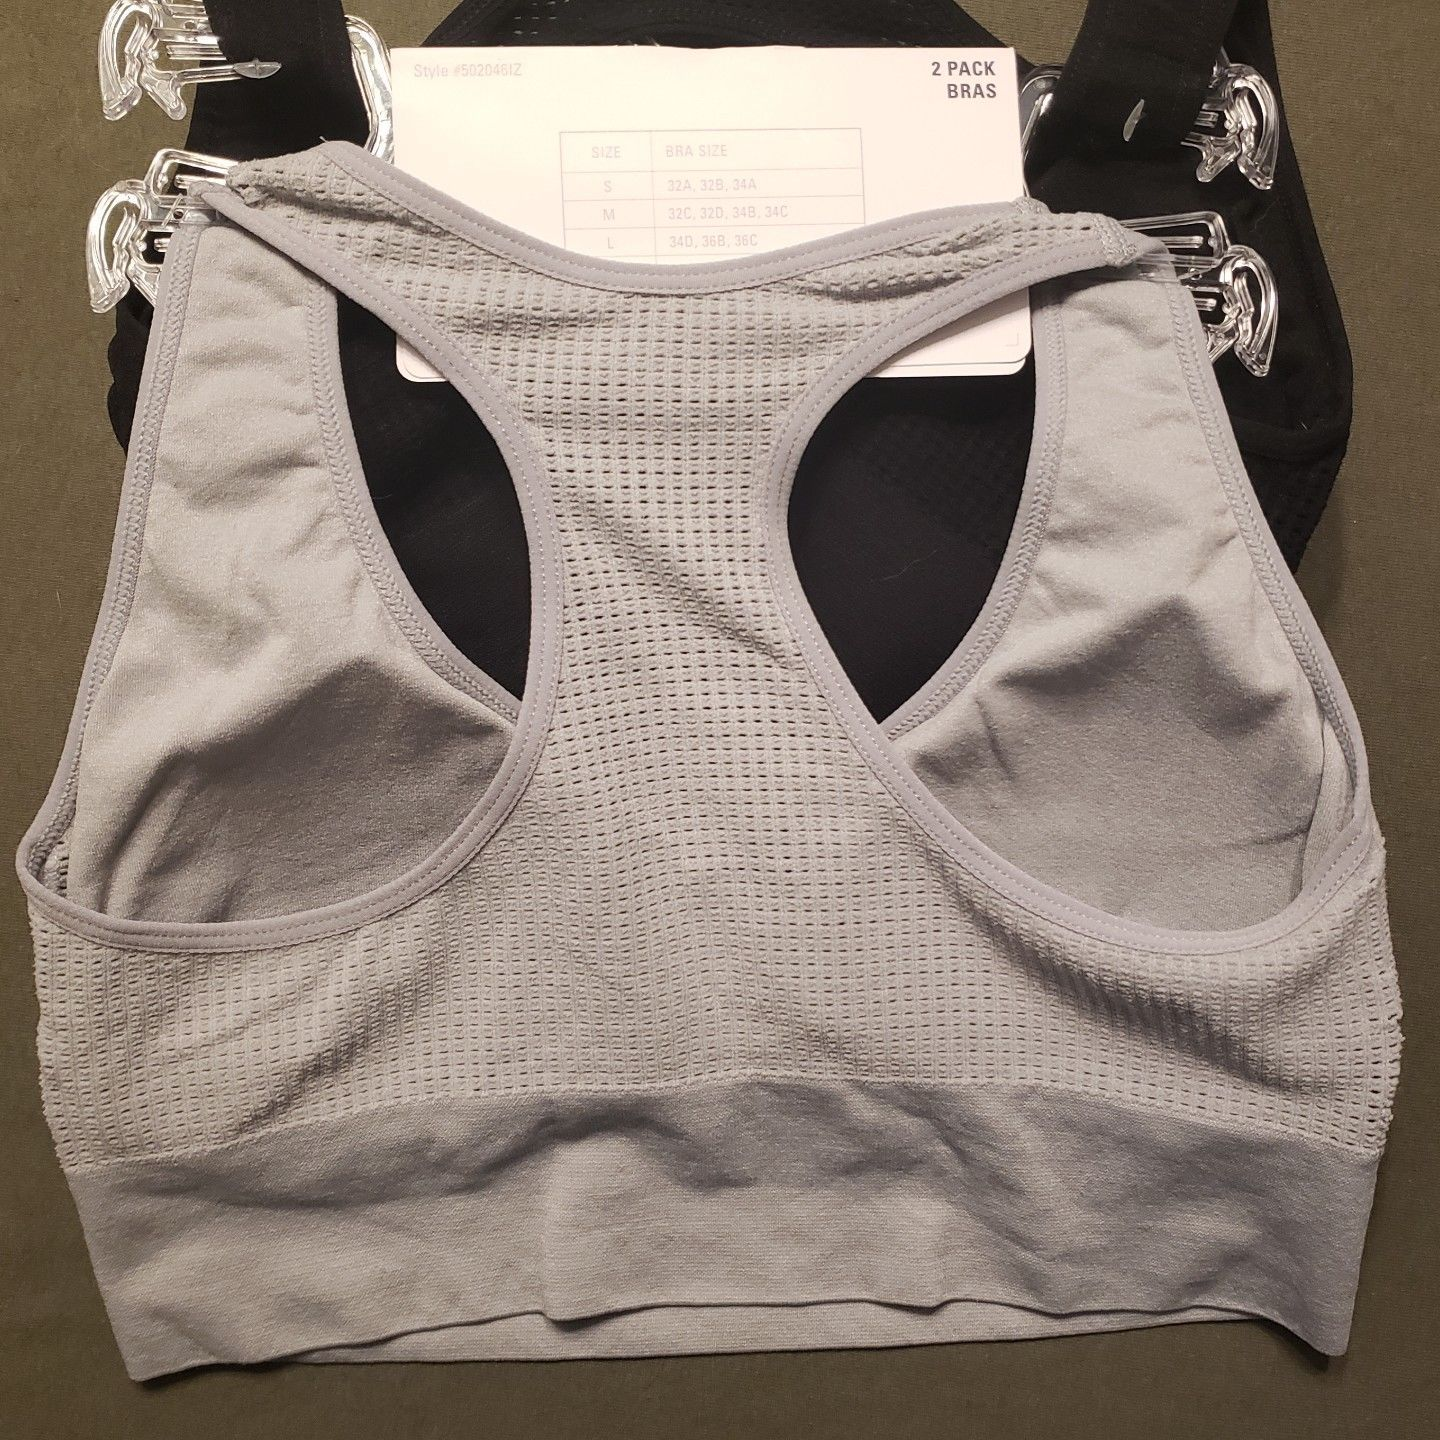 99c5e22032a0d IZOD Sports 2 Pack Seamless Comfort Bras and 50 similar items